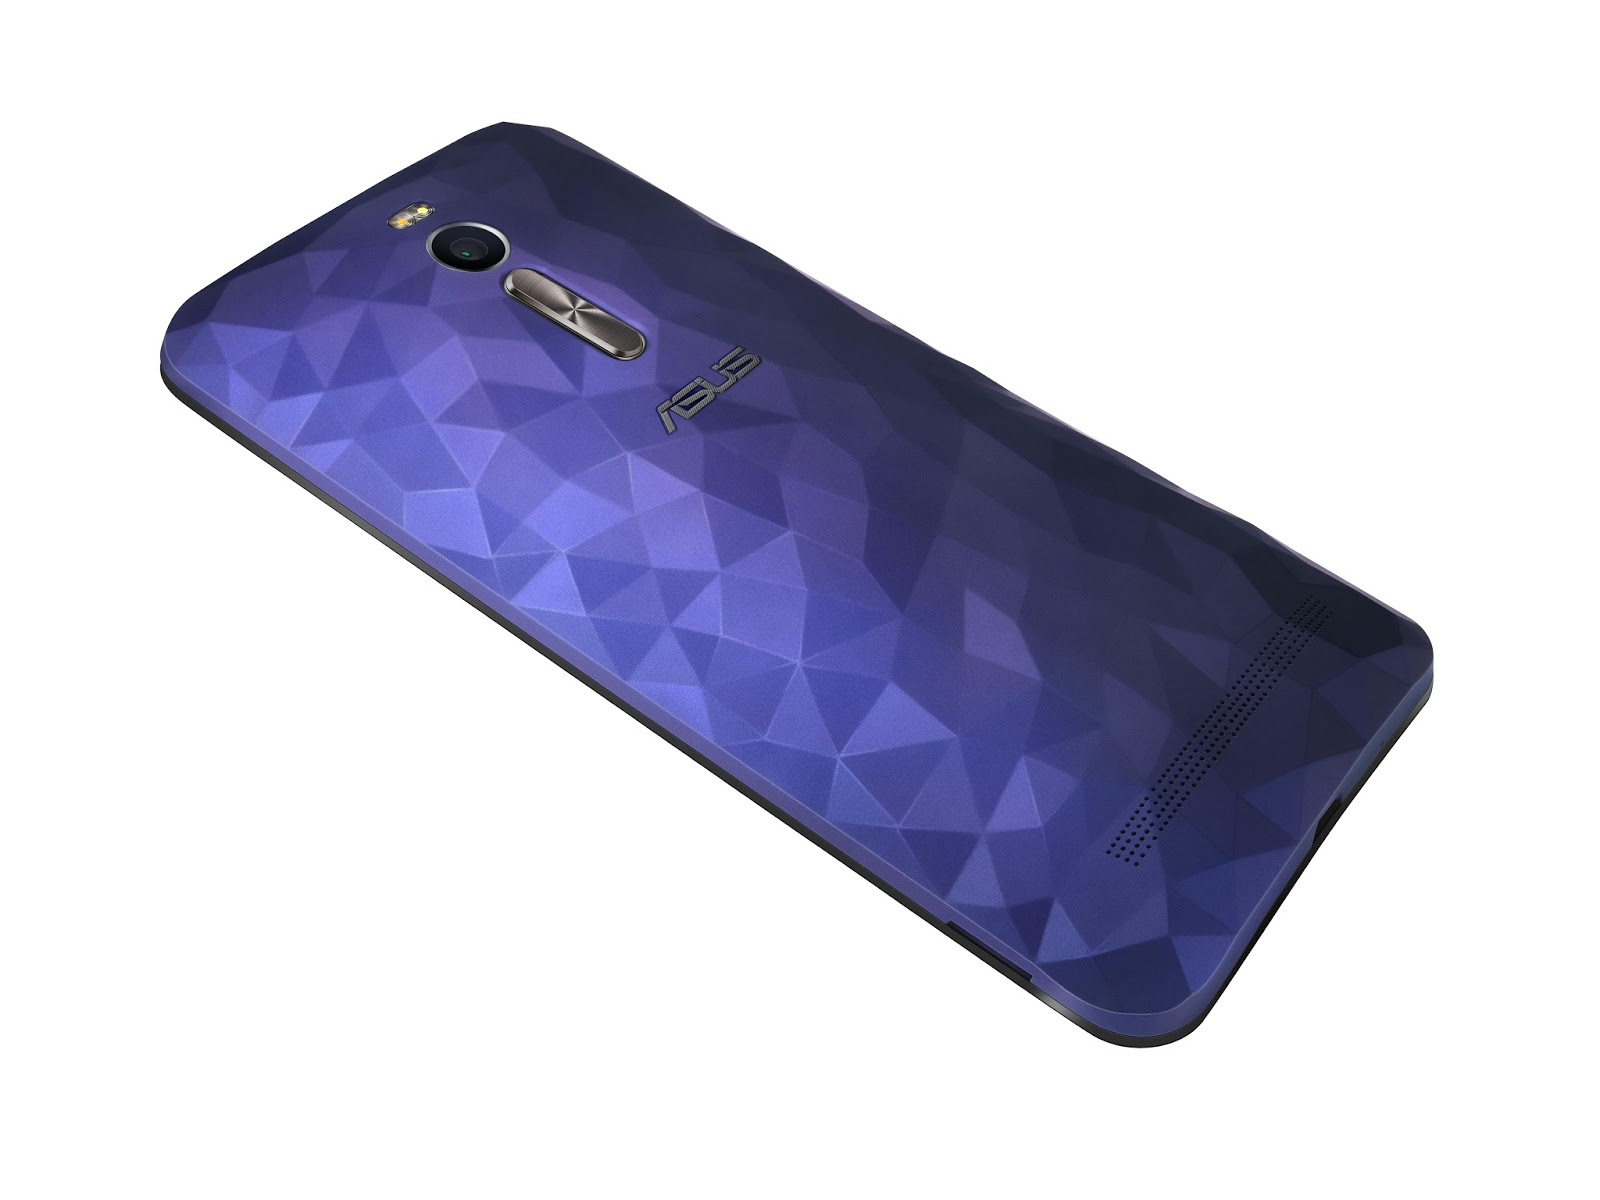 newest 2e48f 648b8 ZenFone 2 (ZE551ML) Promotion with Free ZenCase Illusion Cover ...